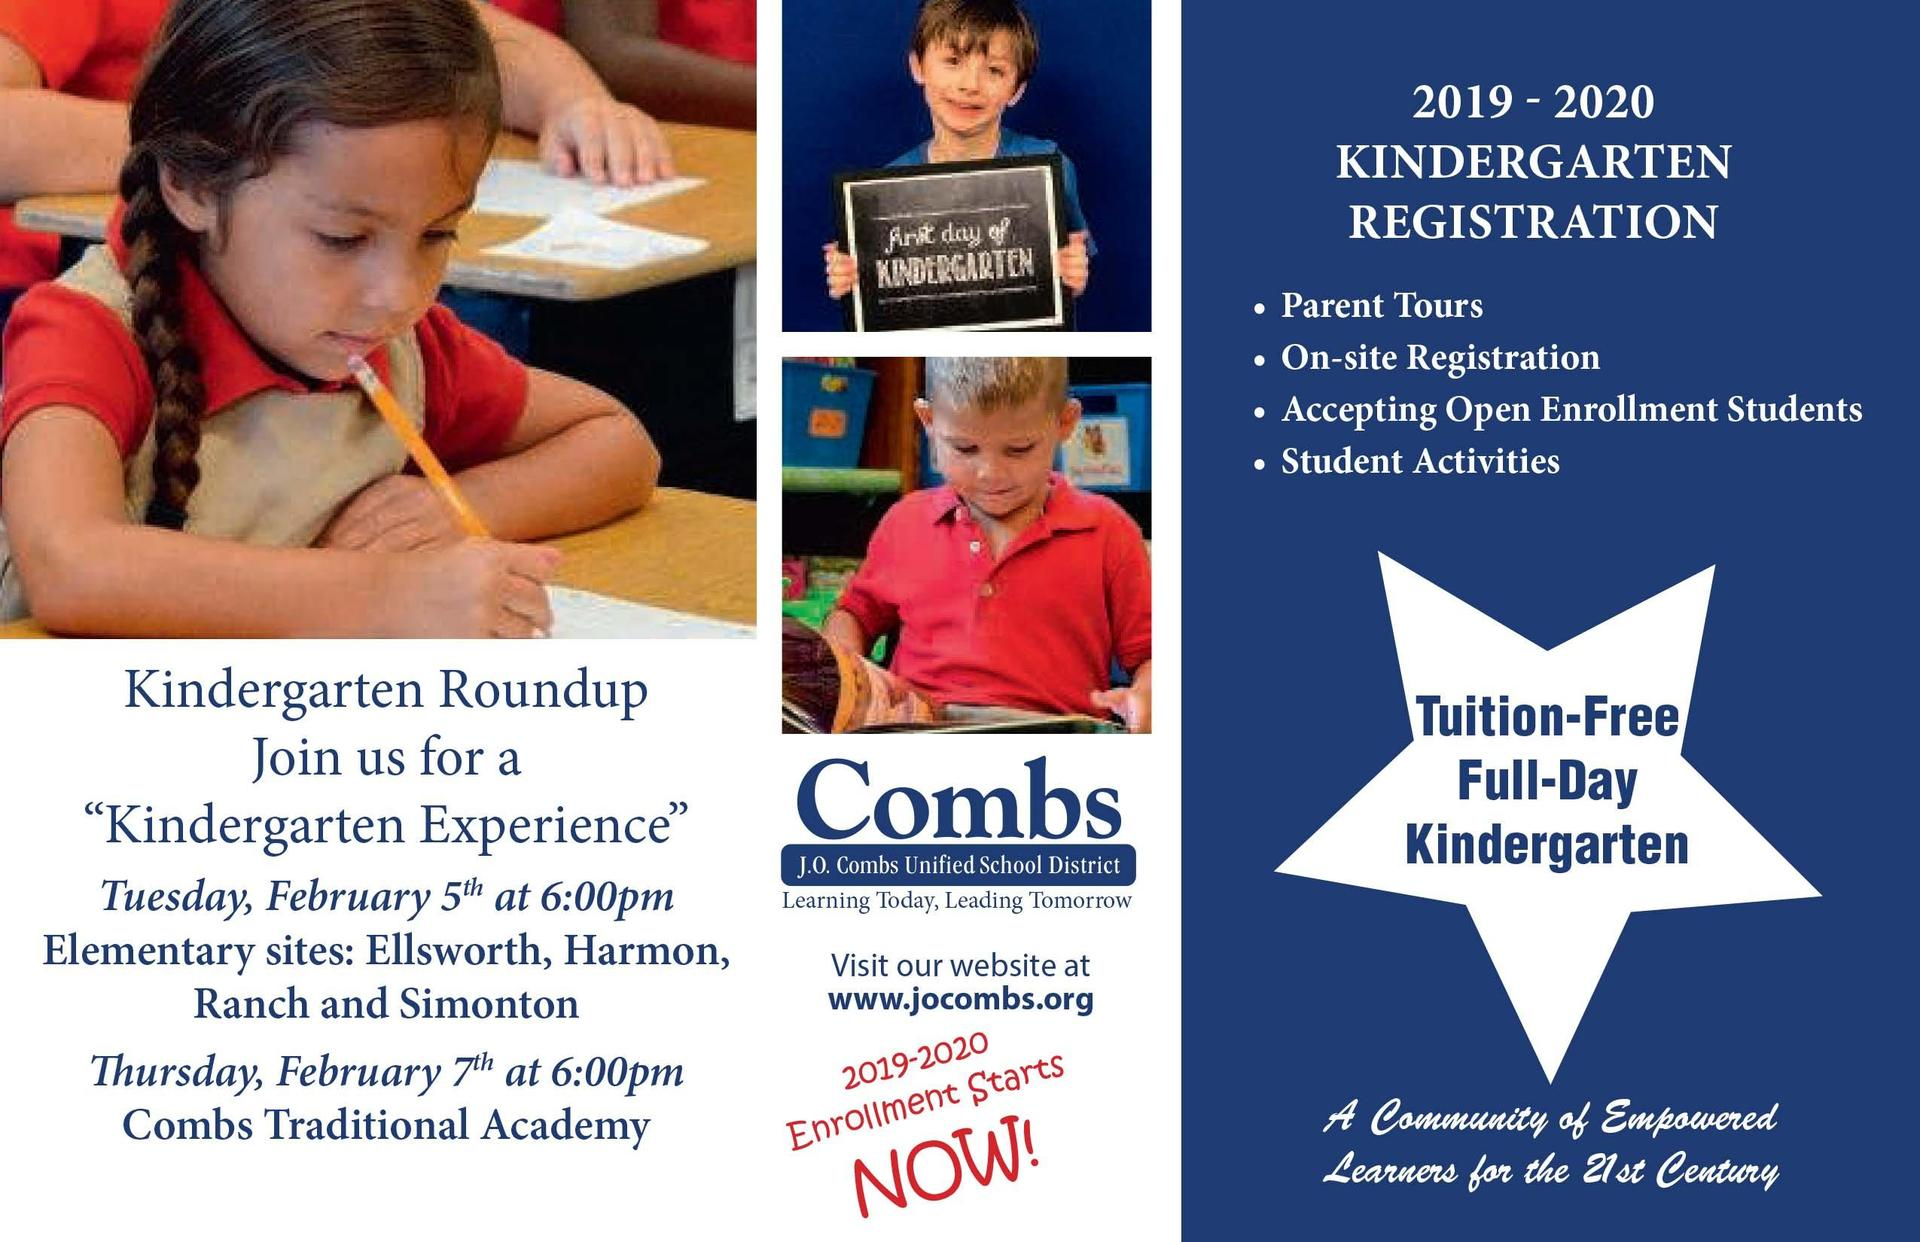 Kindergarten Registration Postcard 2019-2020